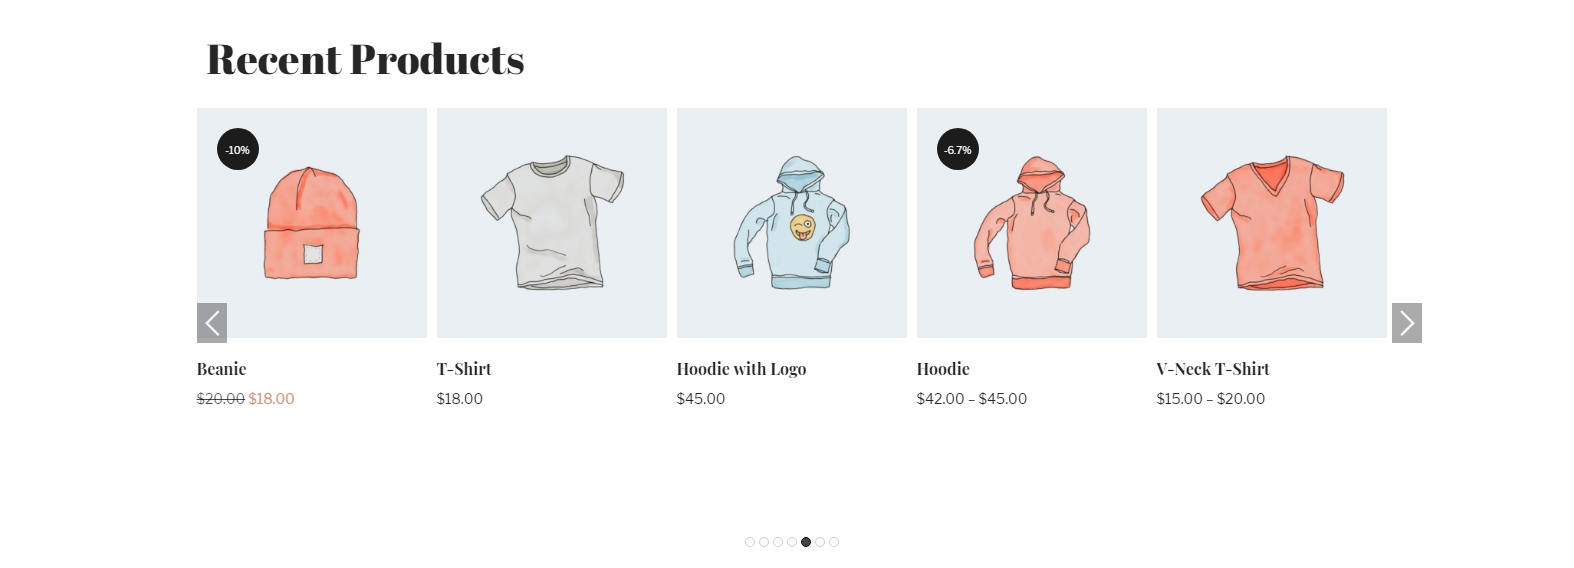 WooCommerce Most Recent Products in carousel view